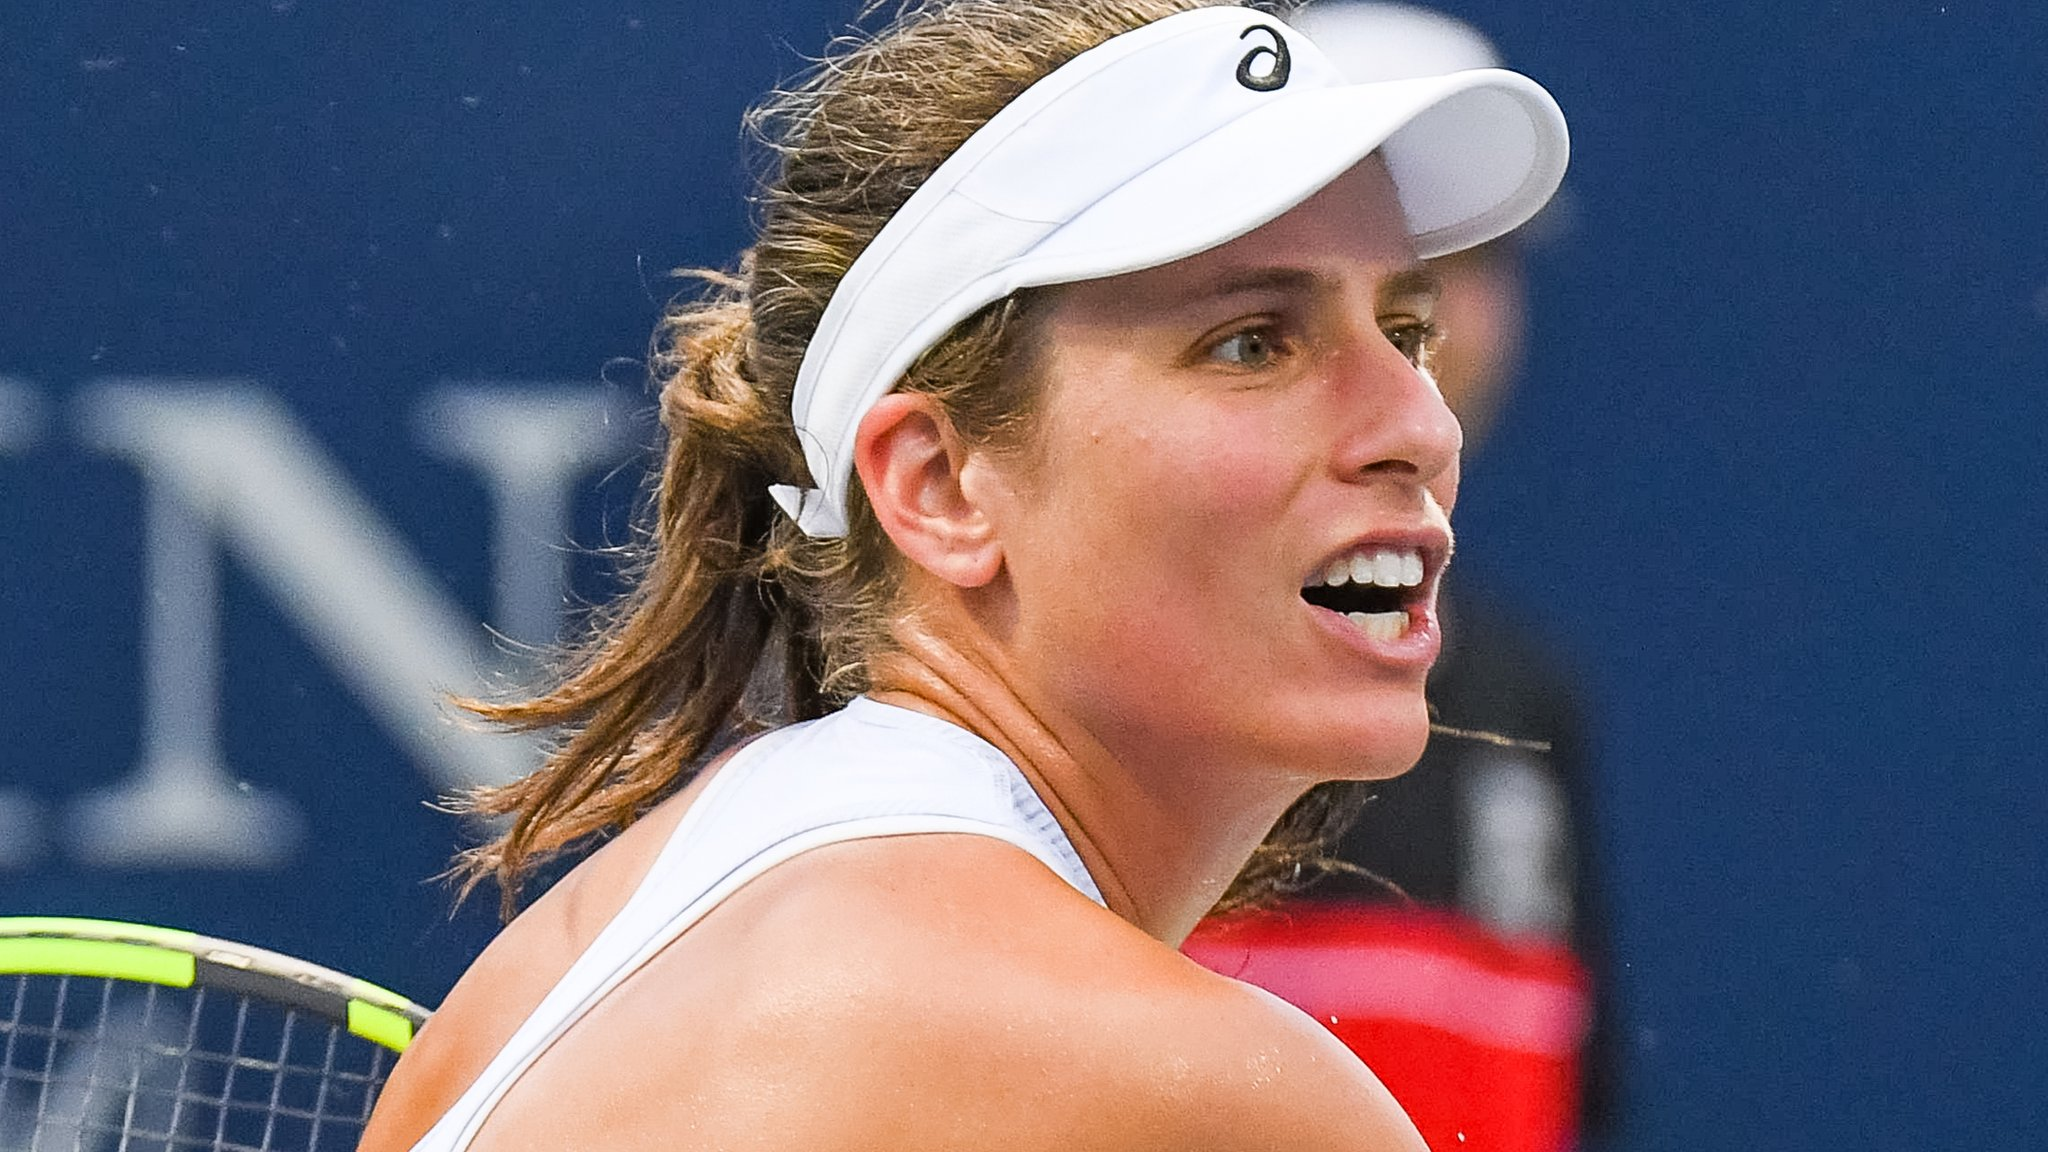 Rogers Cup: Johanna Konta beaten by Elina Svitolina in third round